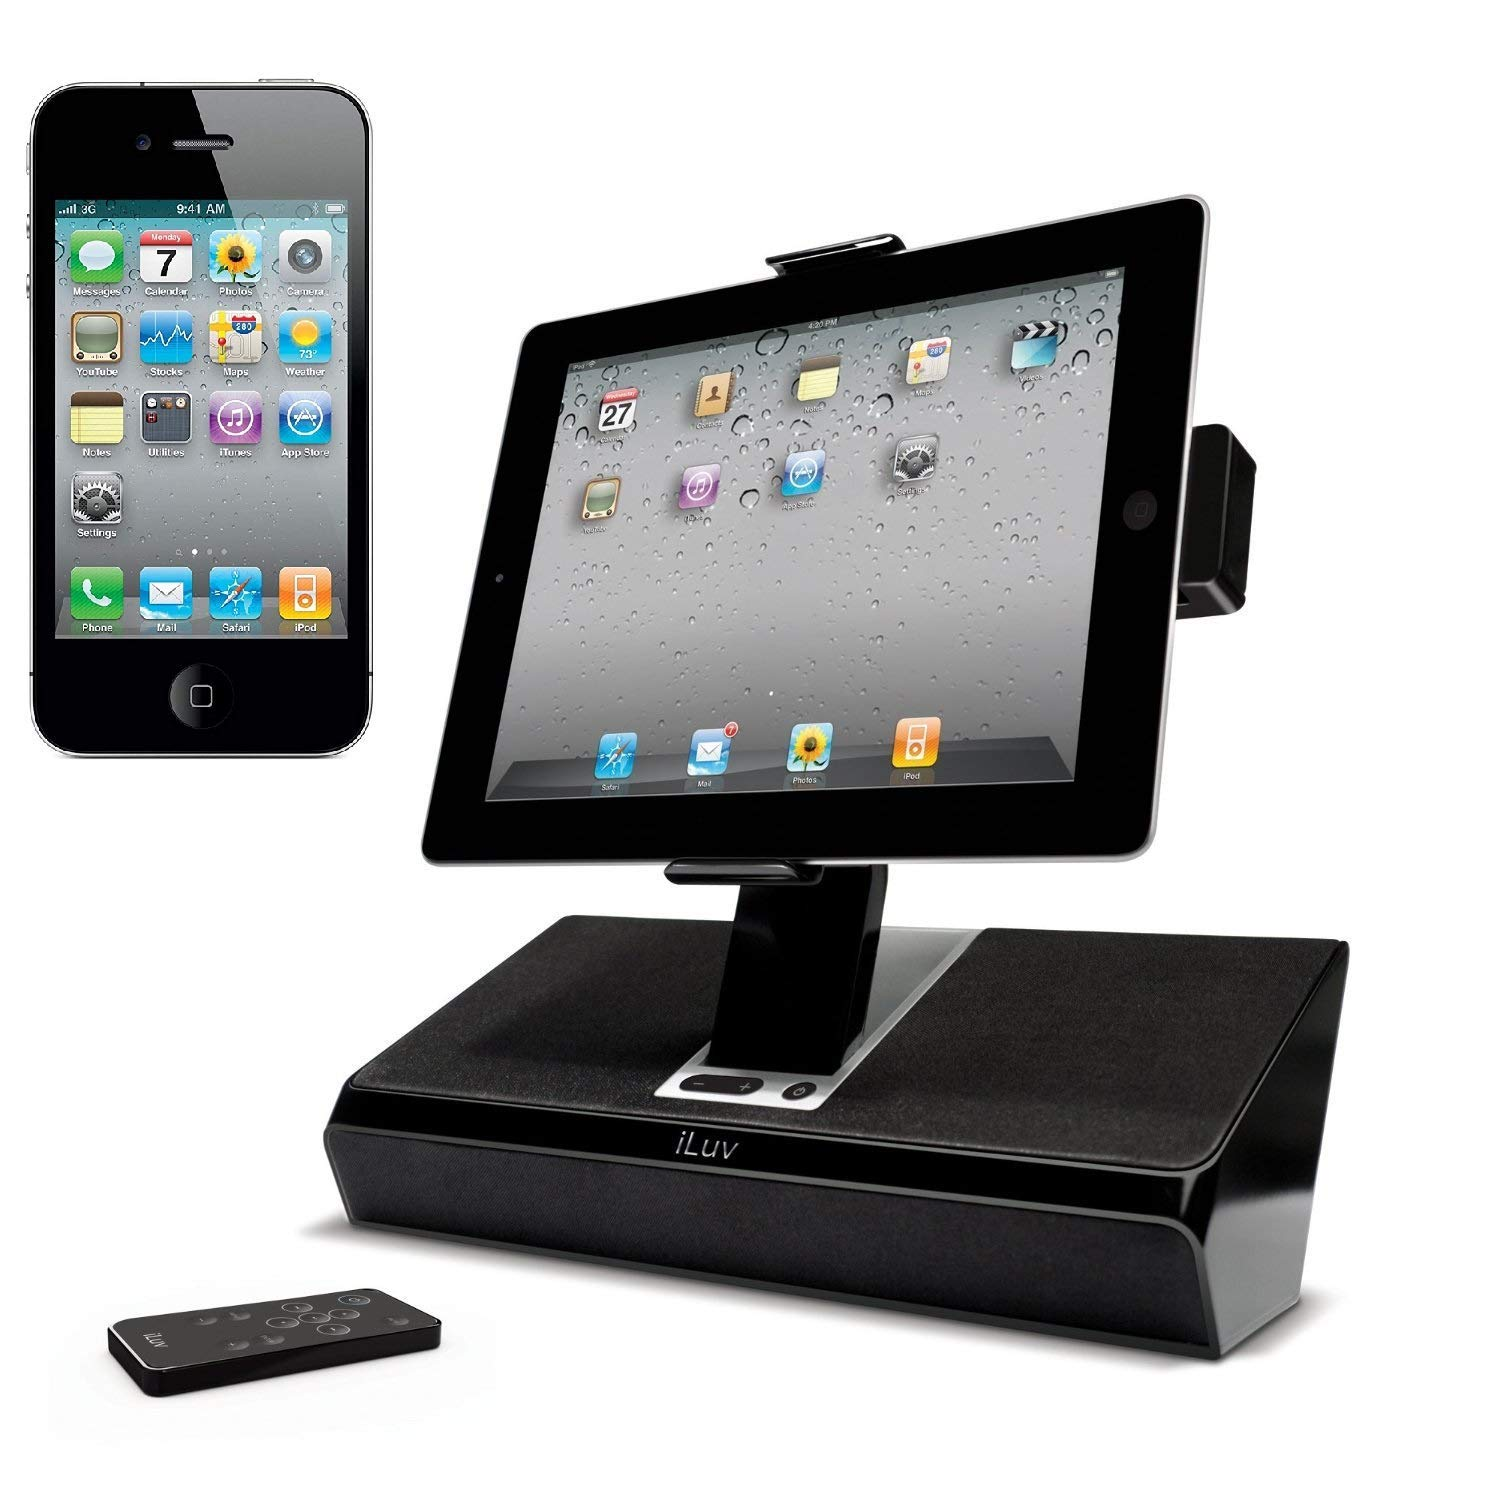 iLuv iMM727BLK ArtStation Stereo Speaker Dock with Remote 30-Pin iPod/iPhone (Discontinued by Manufacturer) by Logitech